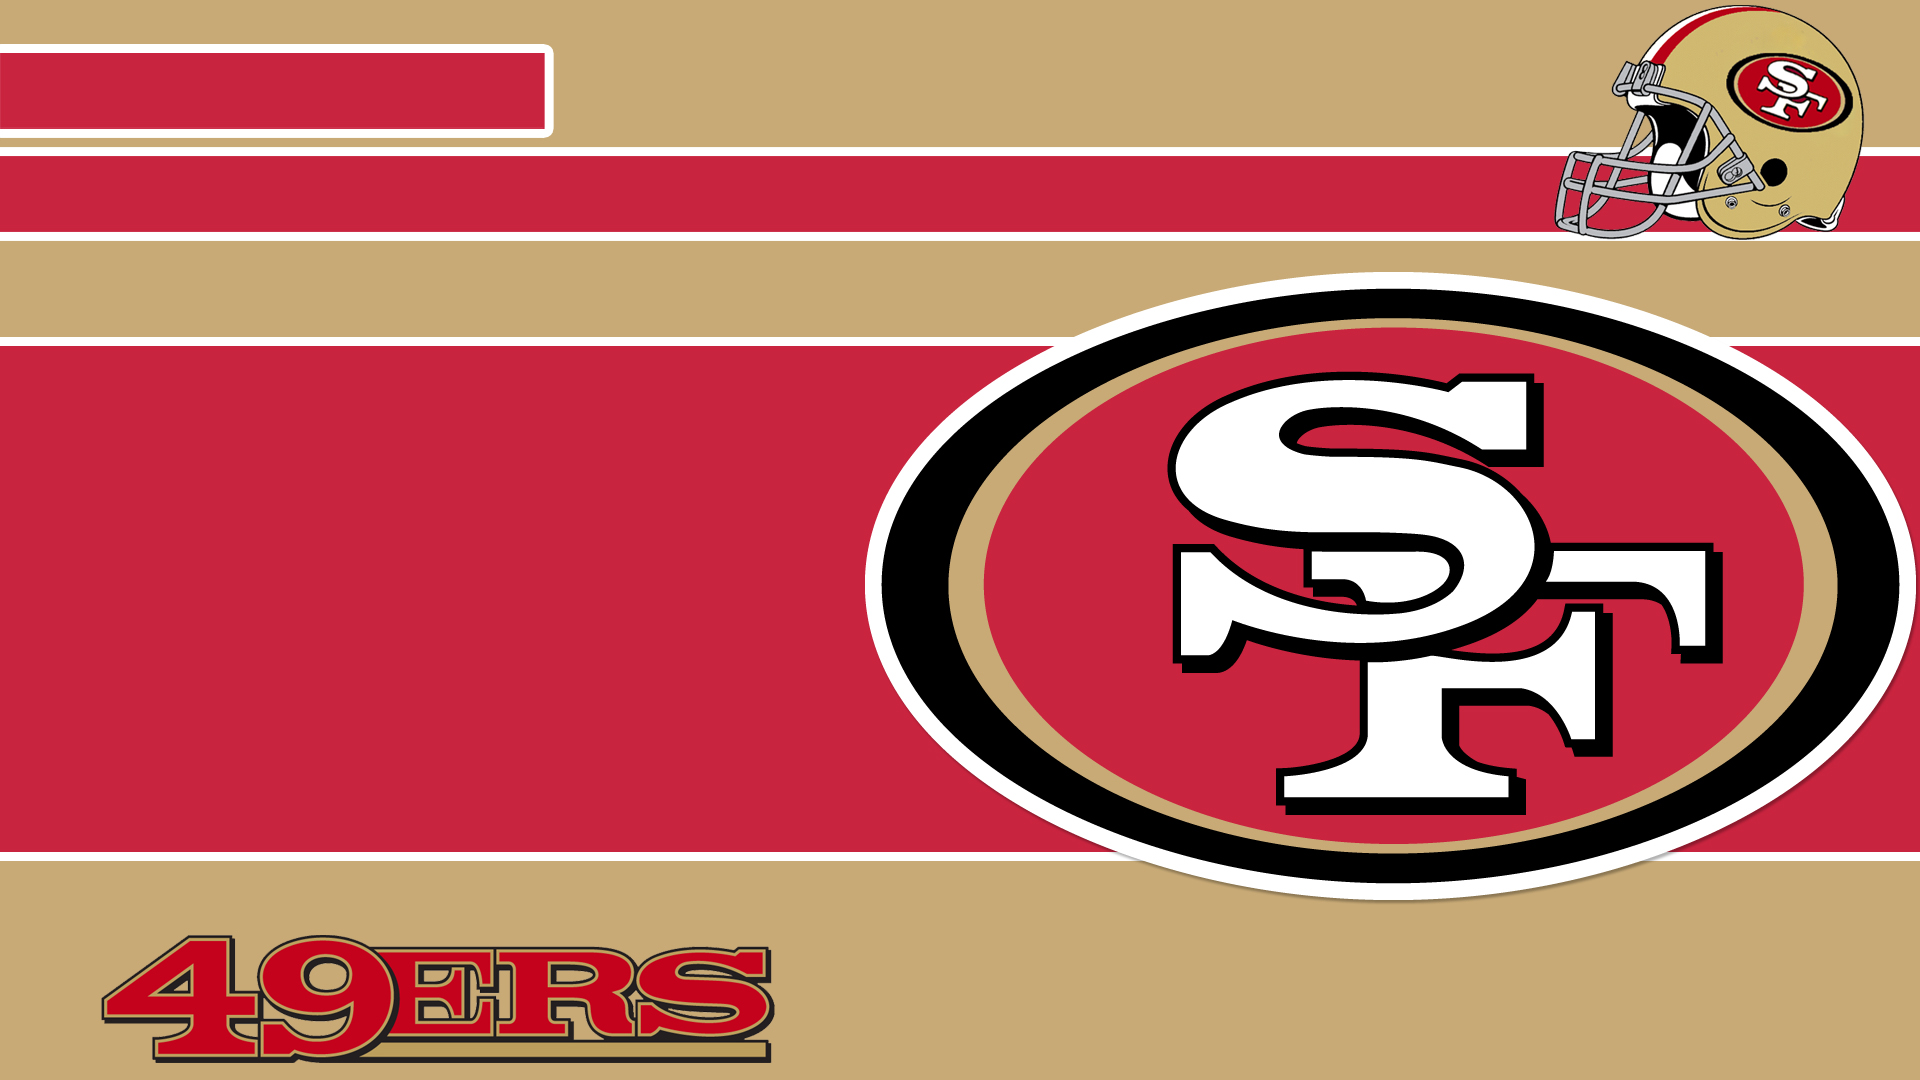 49ers logo poster wallpaper wallpaper download voltagebd Choice Image